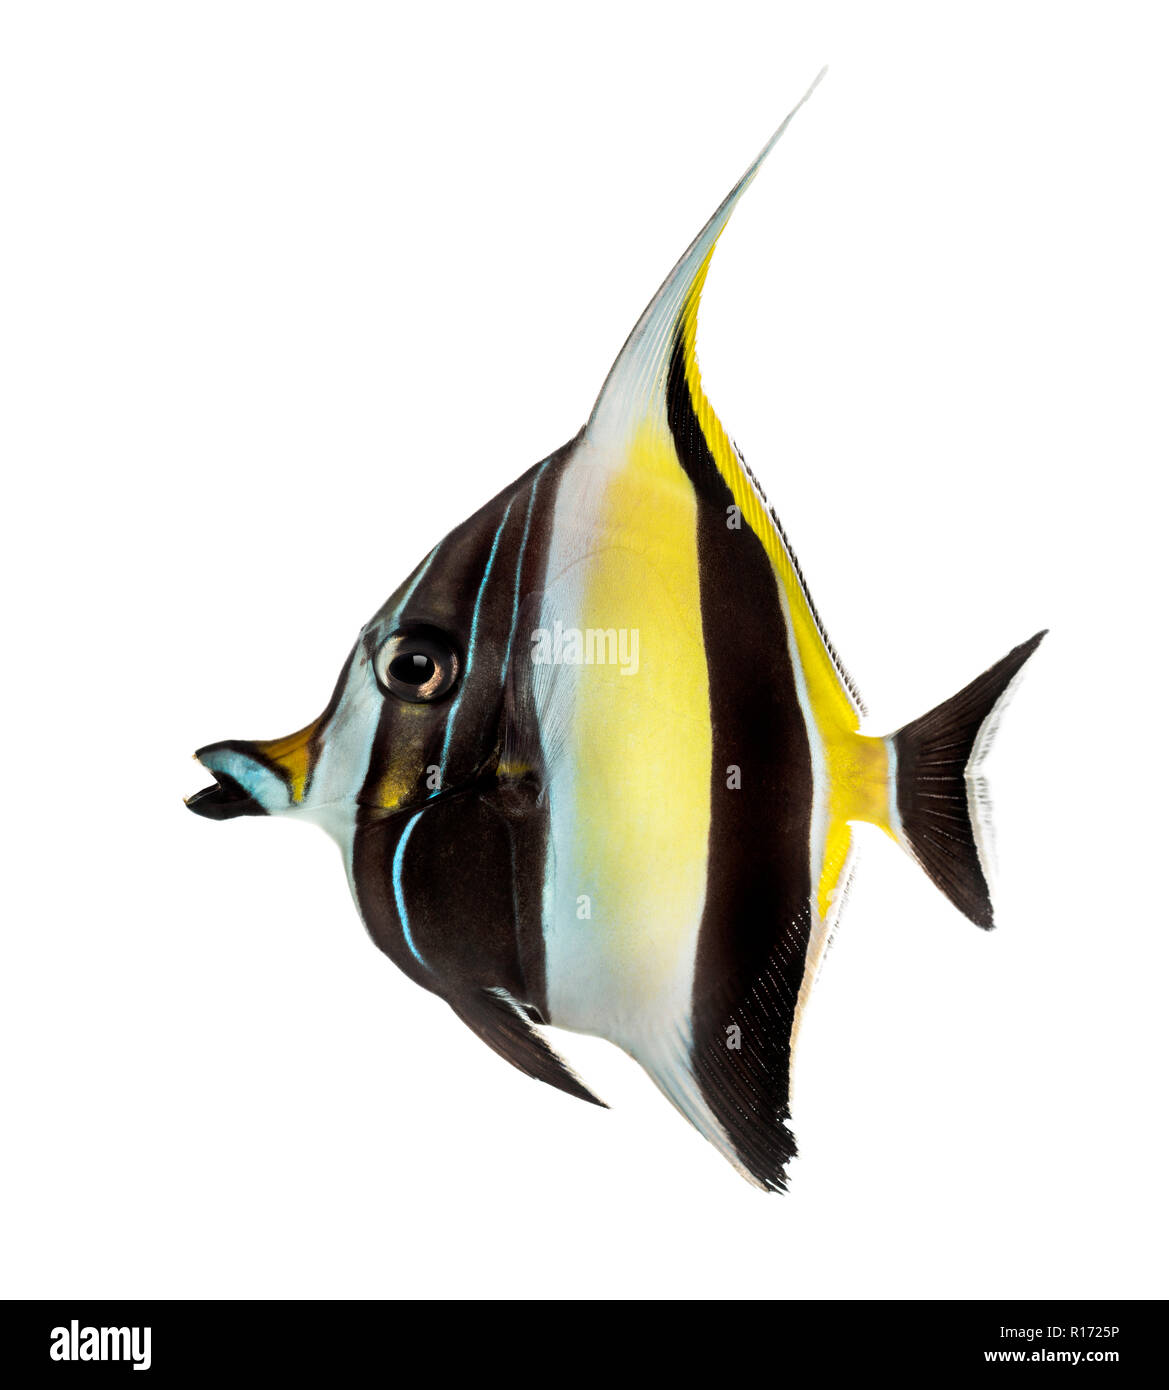 Side view of a Pennant Coralfish, Heniochus acuminatus, isolated on white - Stock Image